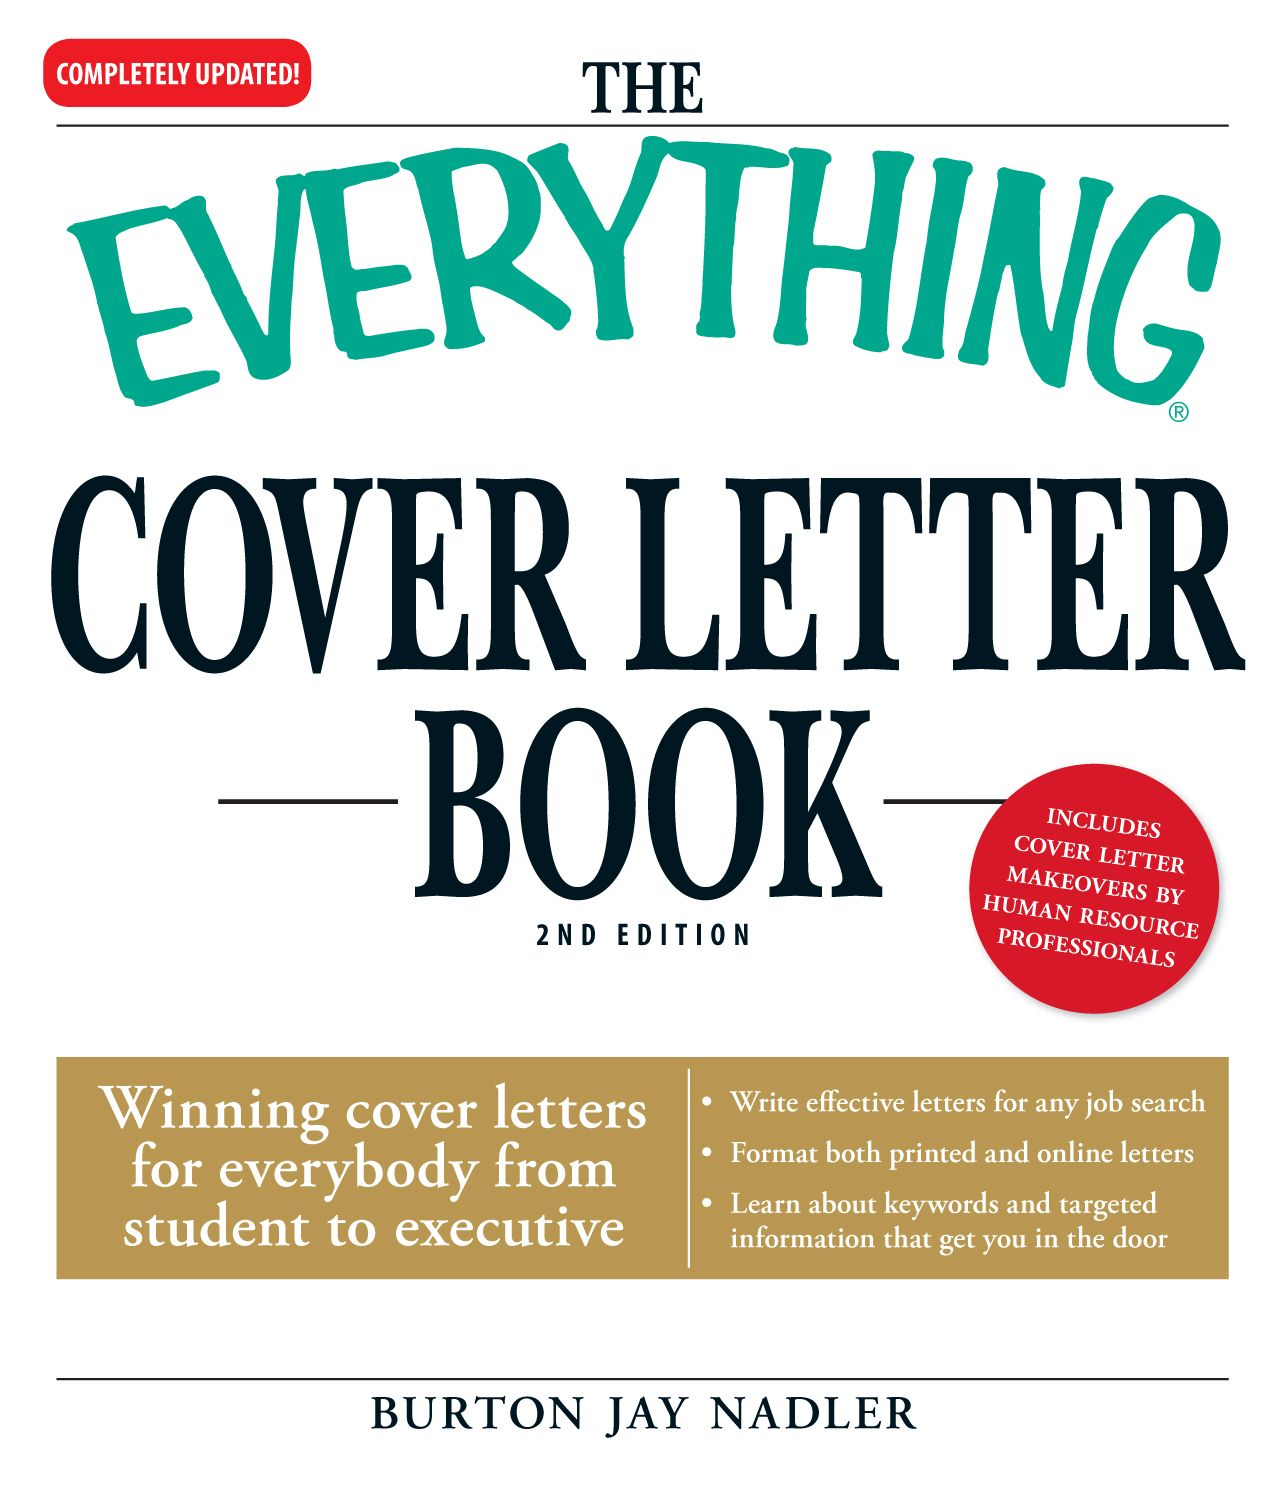 Everything Cover Letter Book: Winning Cover Letters For Everybody From Student To Executive By: Burton Jay Nadler